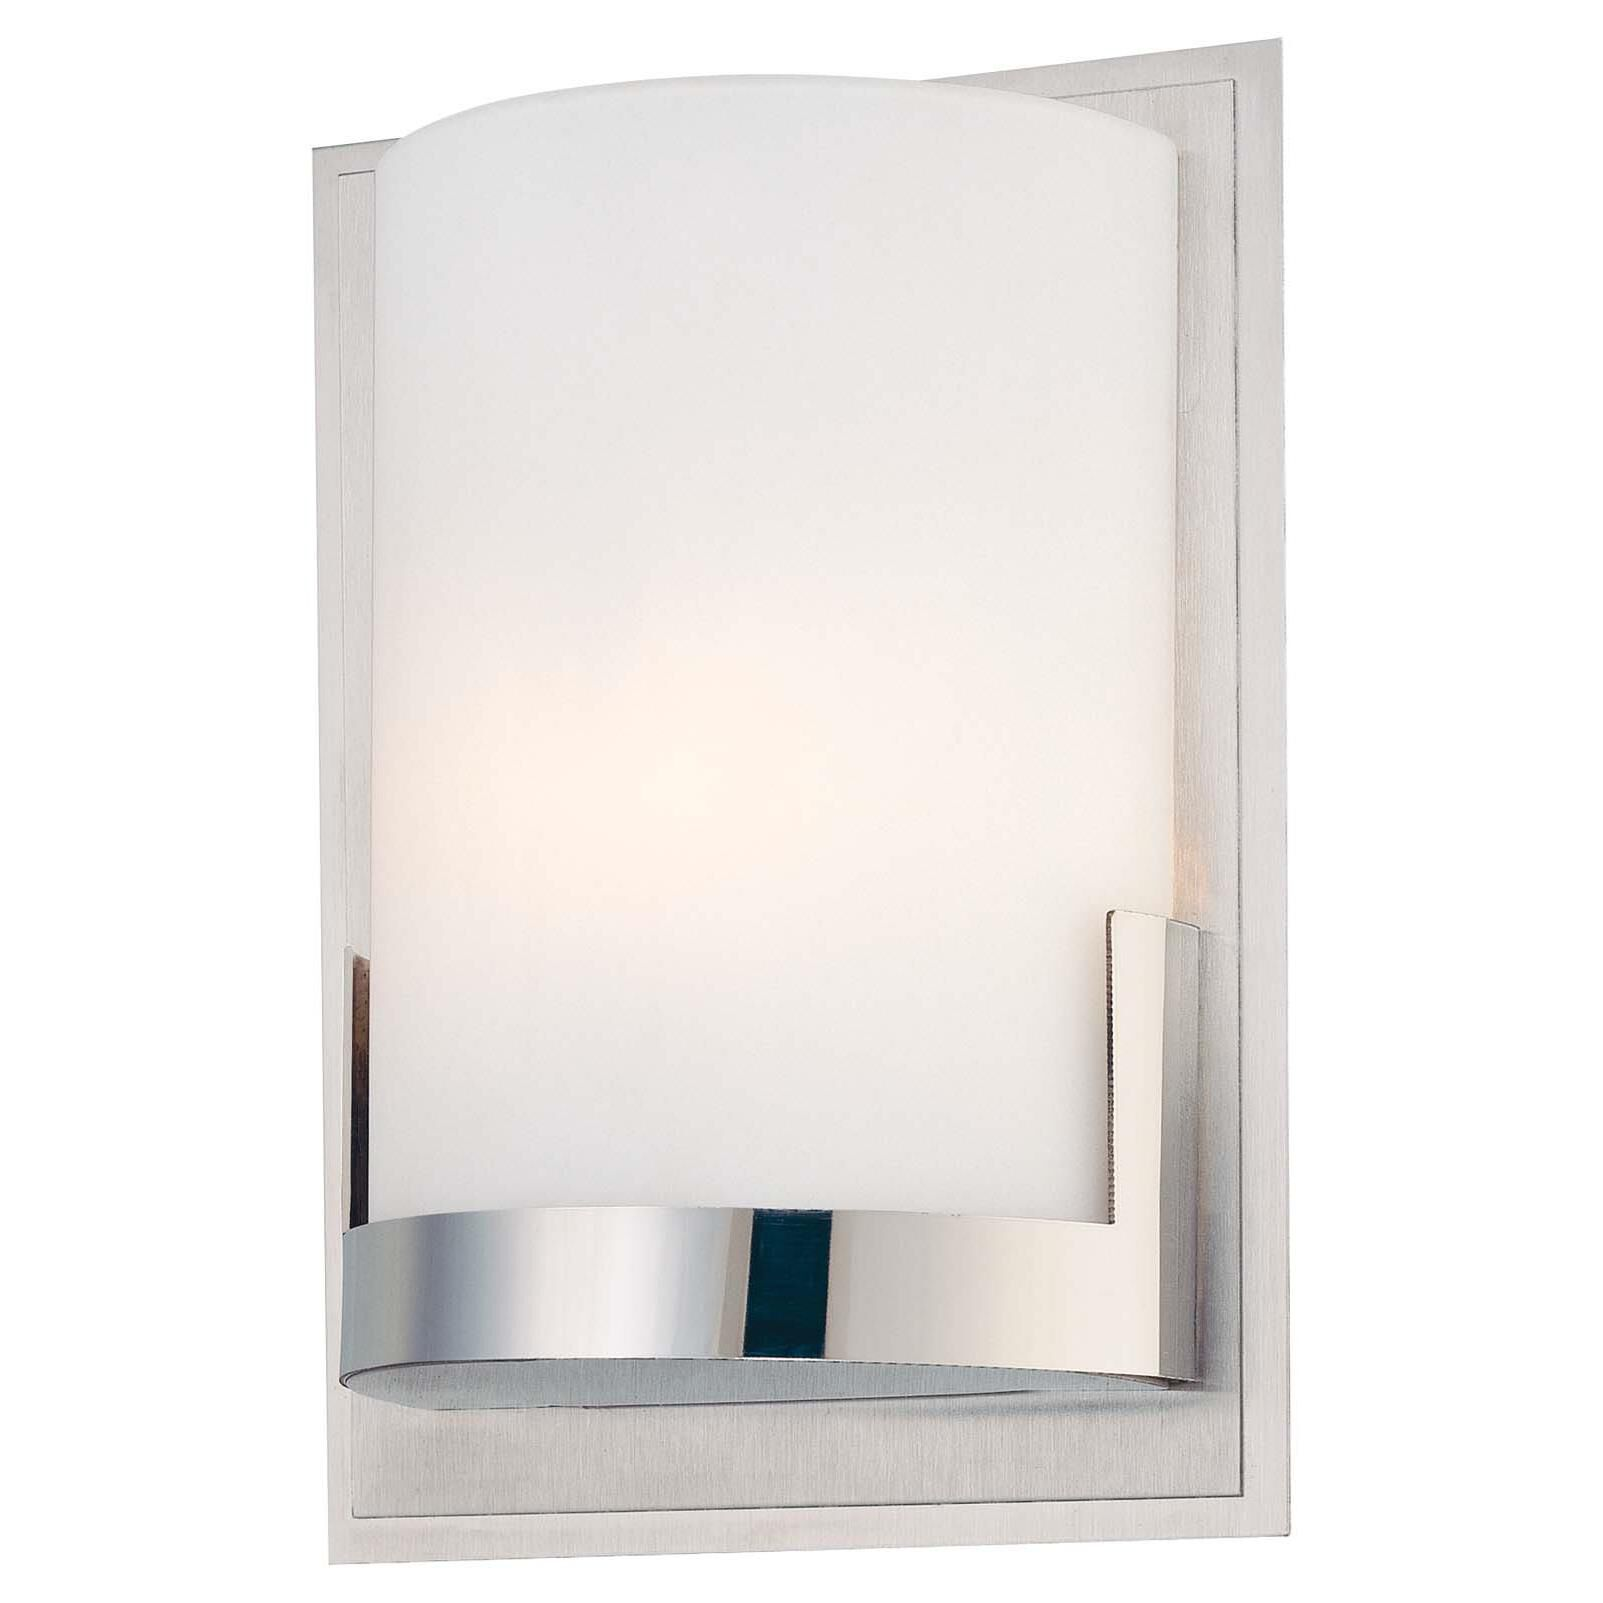 Kovacs Convex 7 Inch Wall Sconce Convex - P5951-077 - Transitional